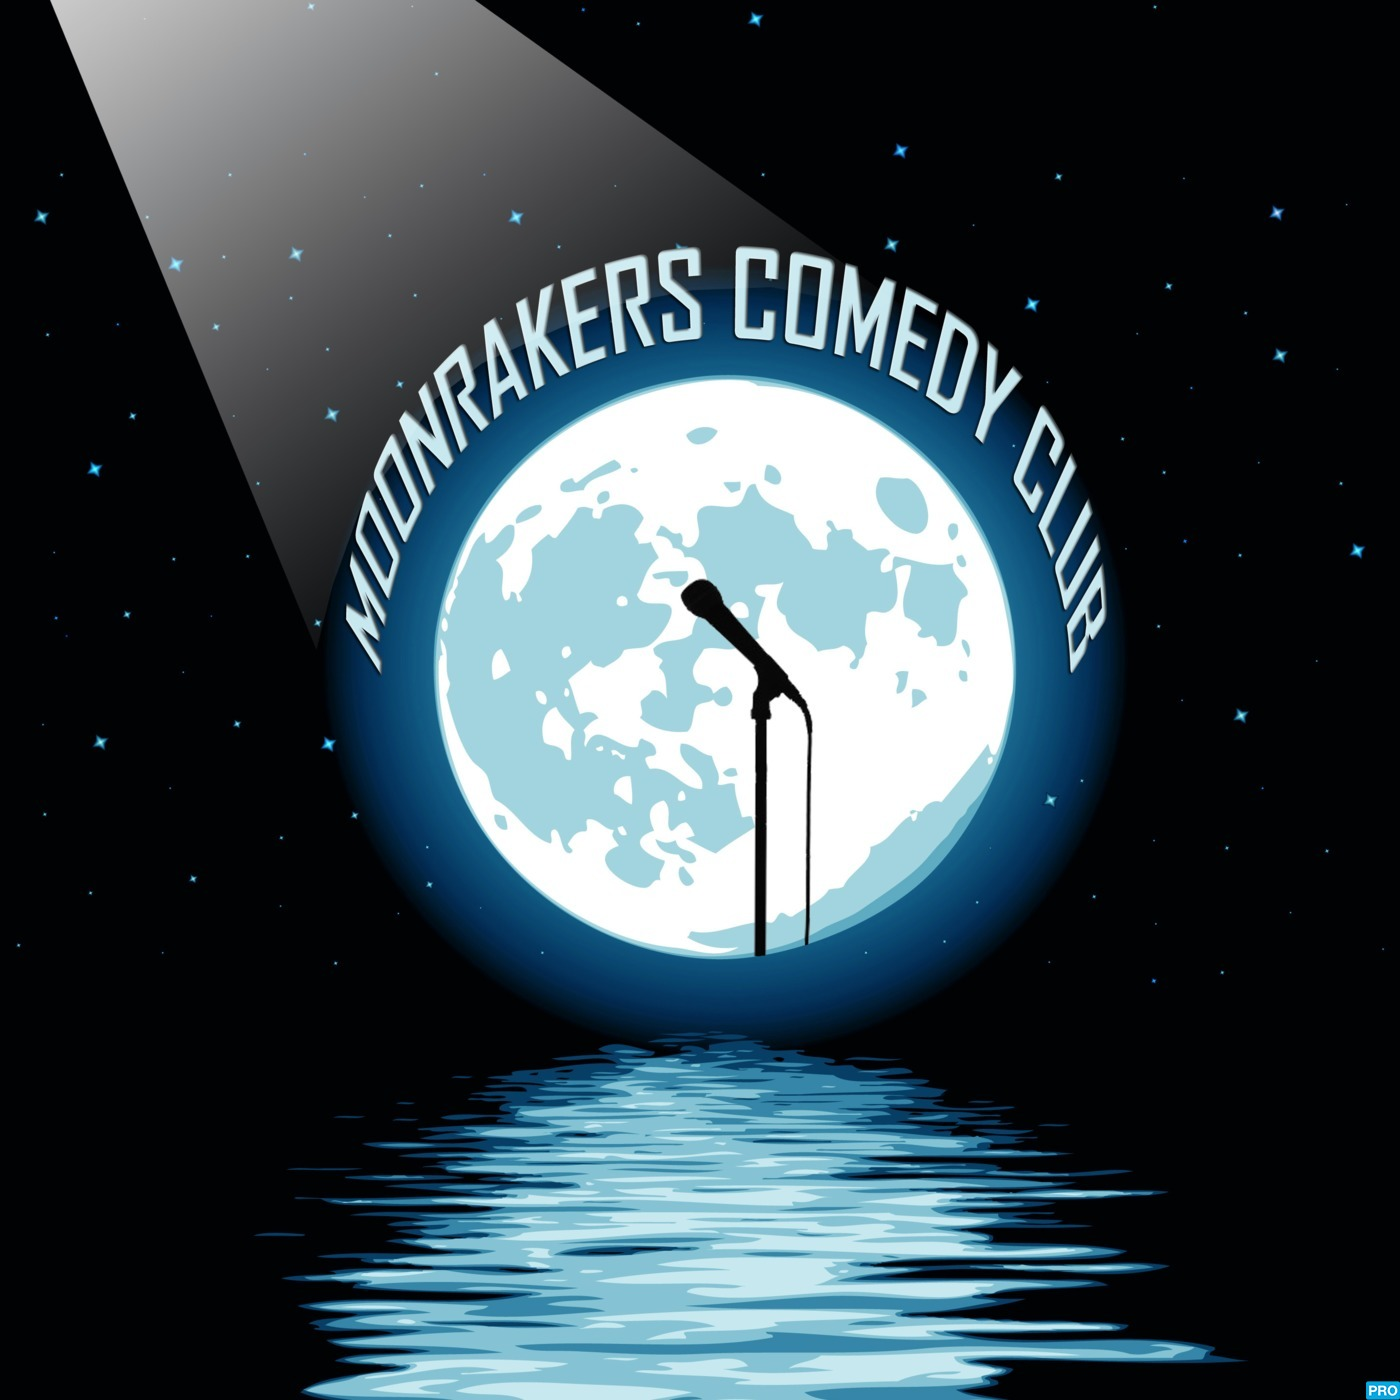 Moonrakers Comedy Podcast